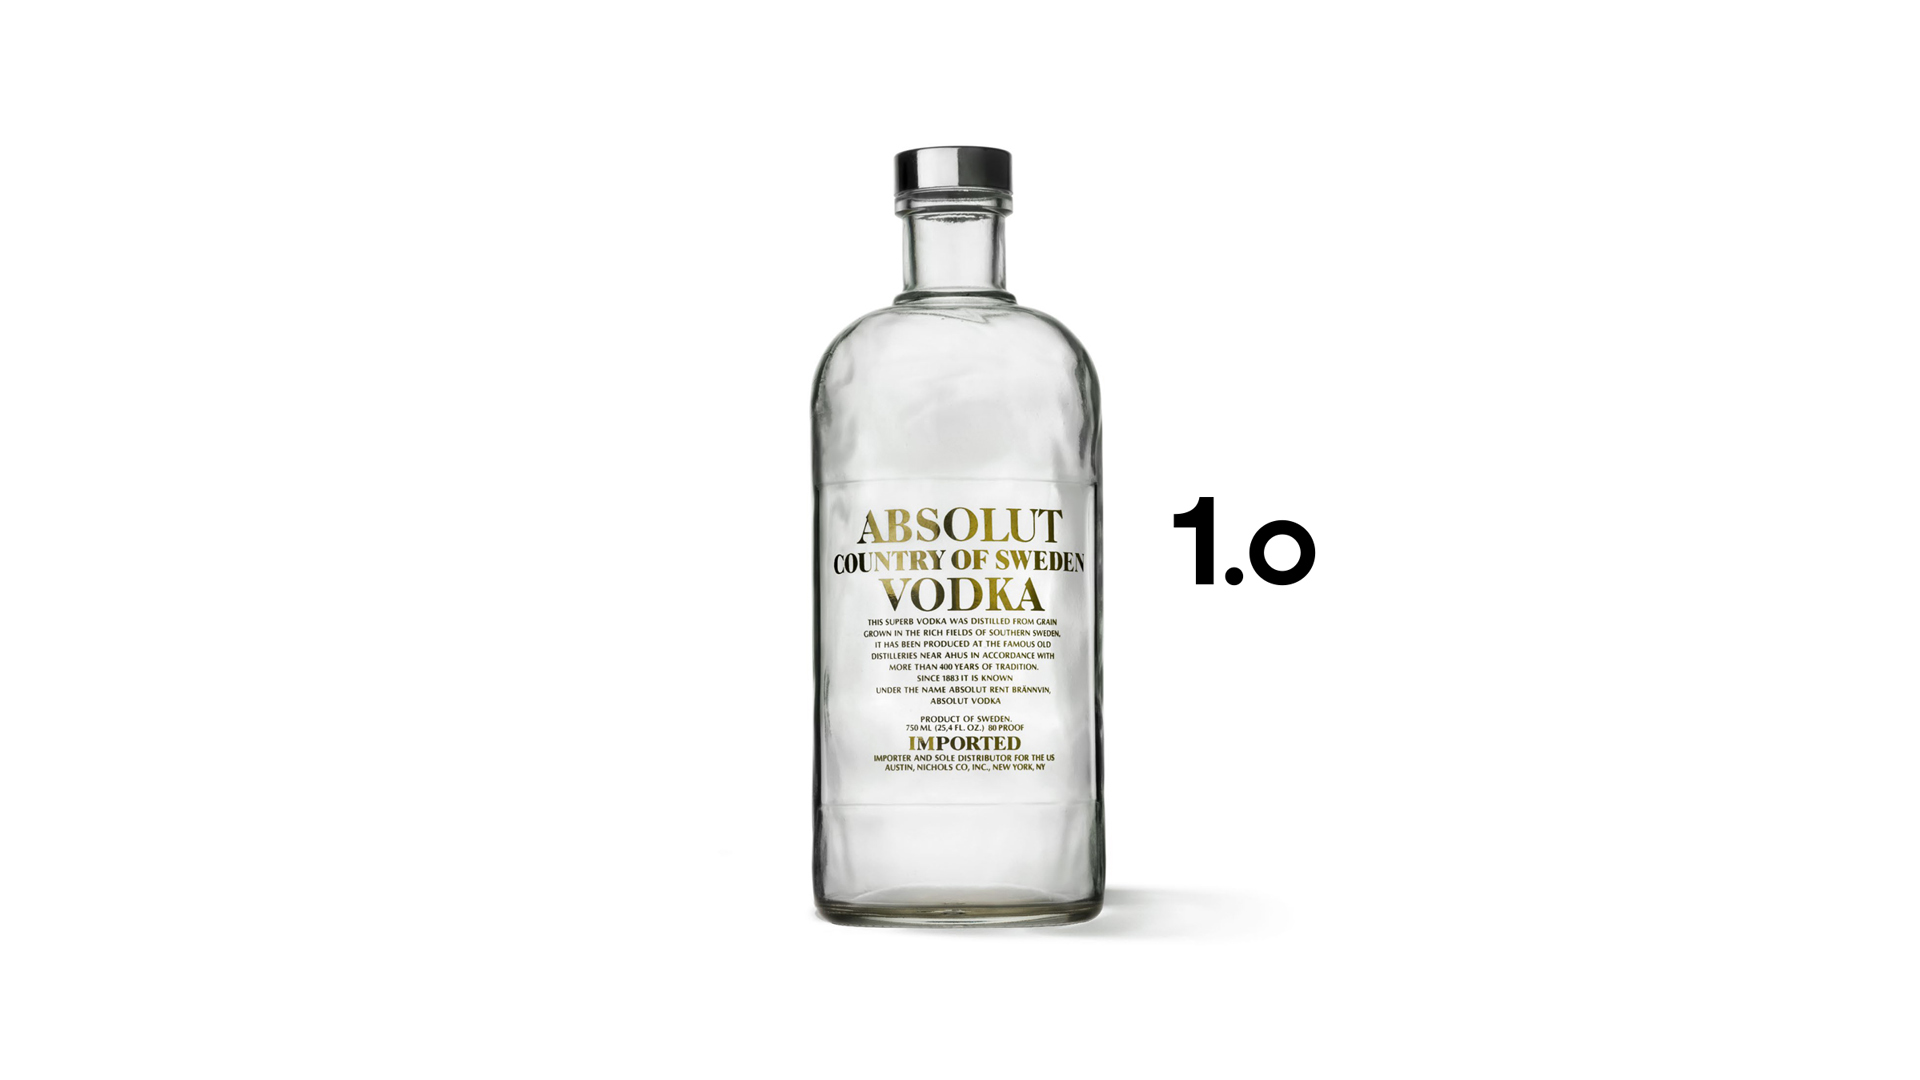 Absolut for projects